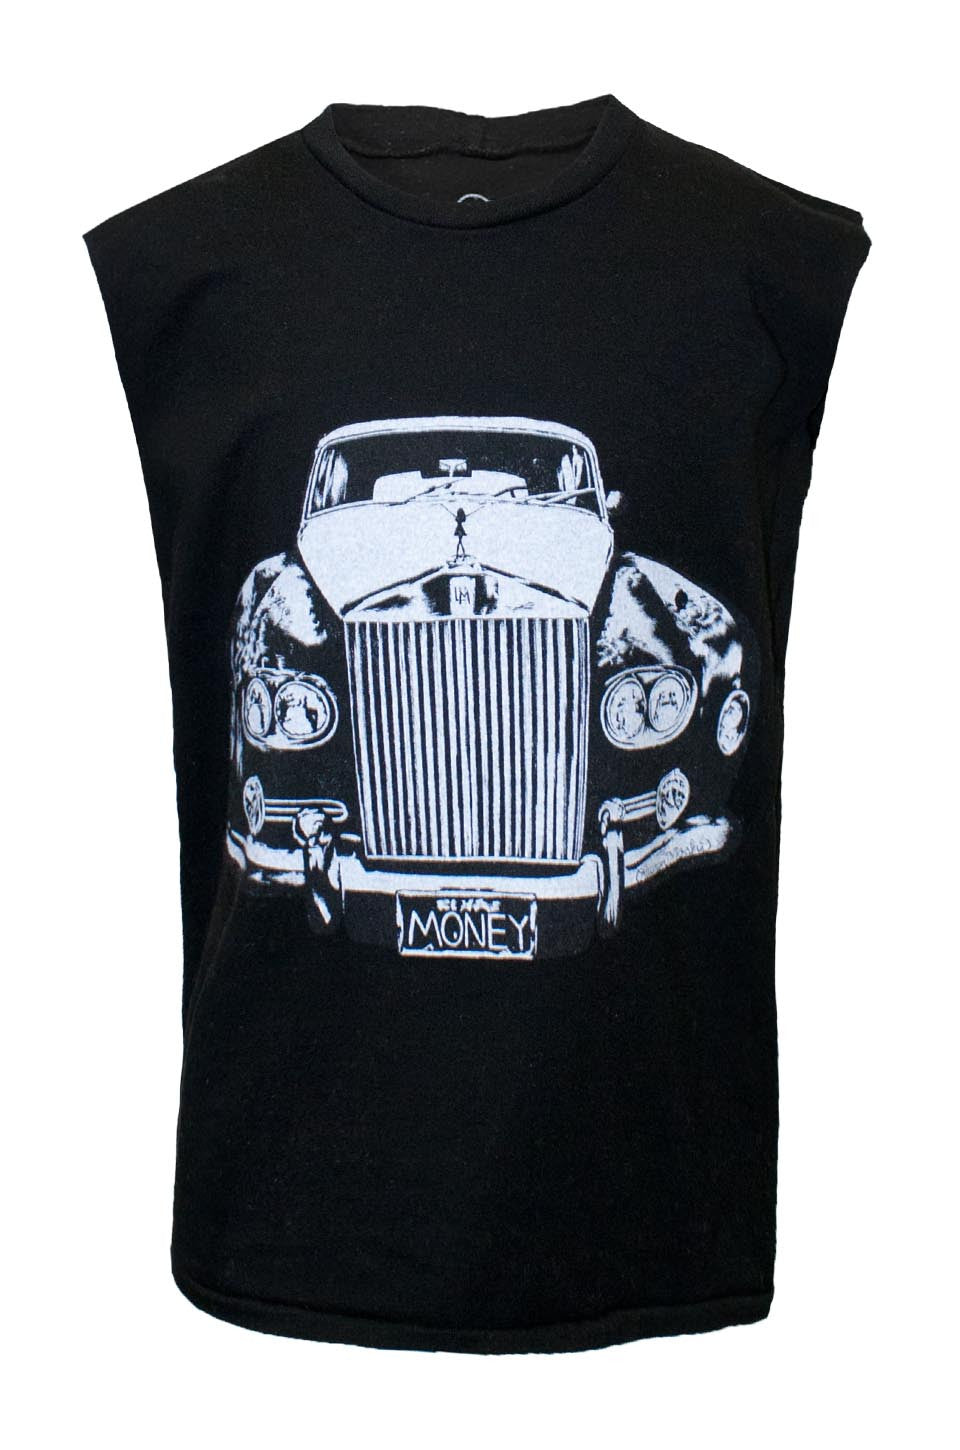 Lauren Moshi Kids Women's Thor Rolls Royce Muscle Tee - Black